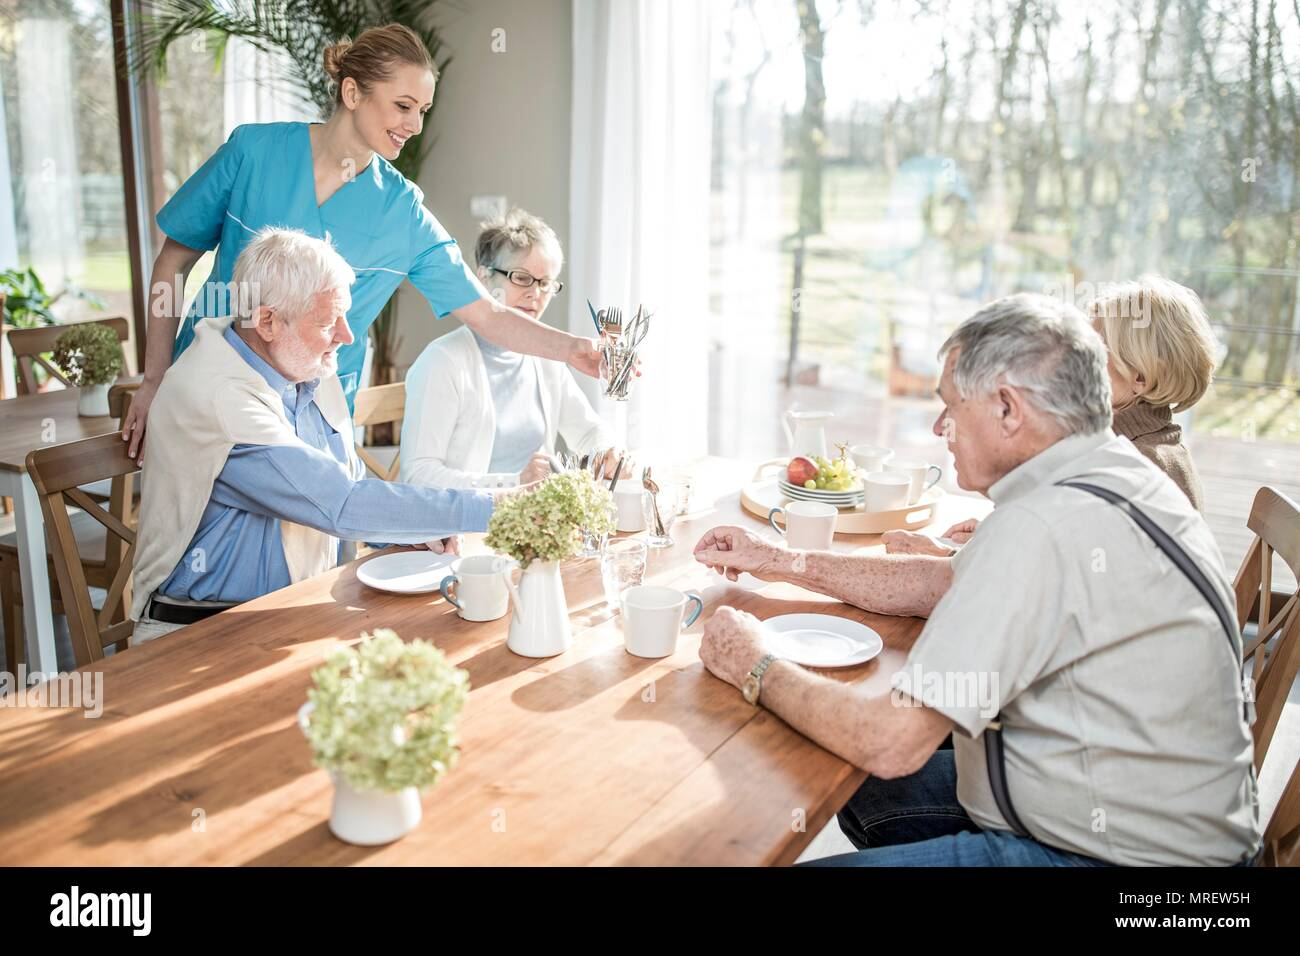 Female care worker serving senior adults at dinner table in care home. - Stock Image